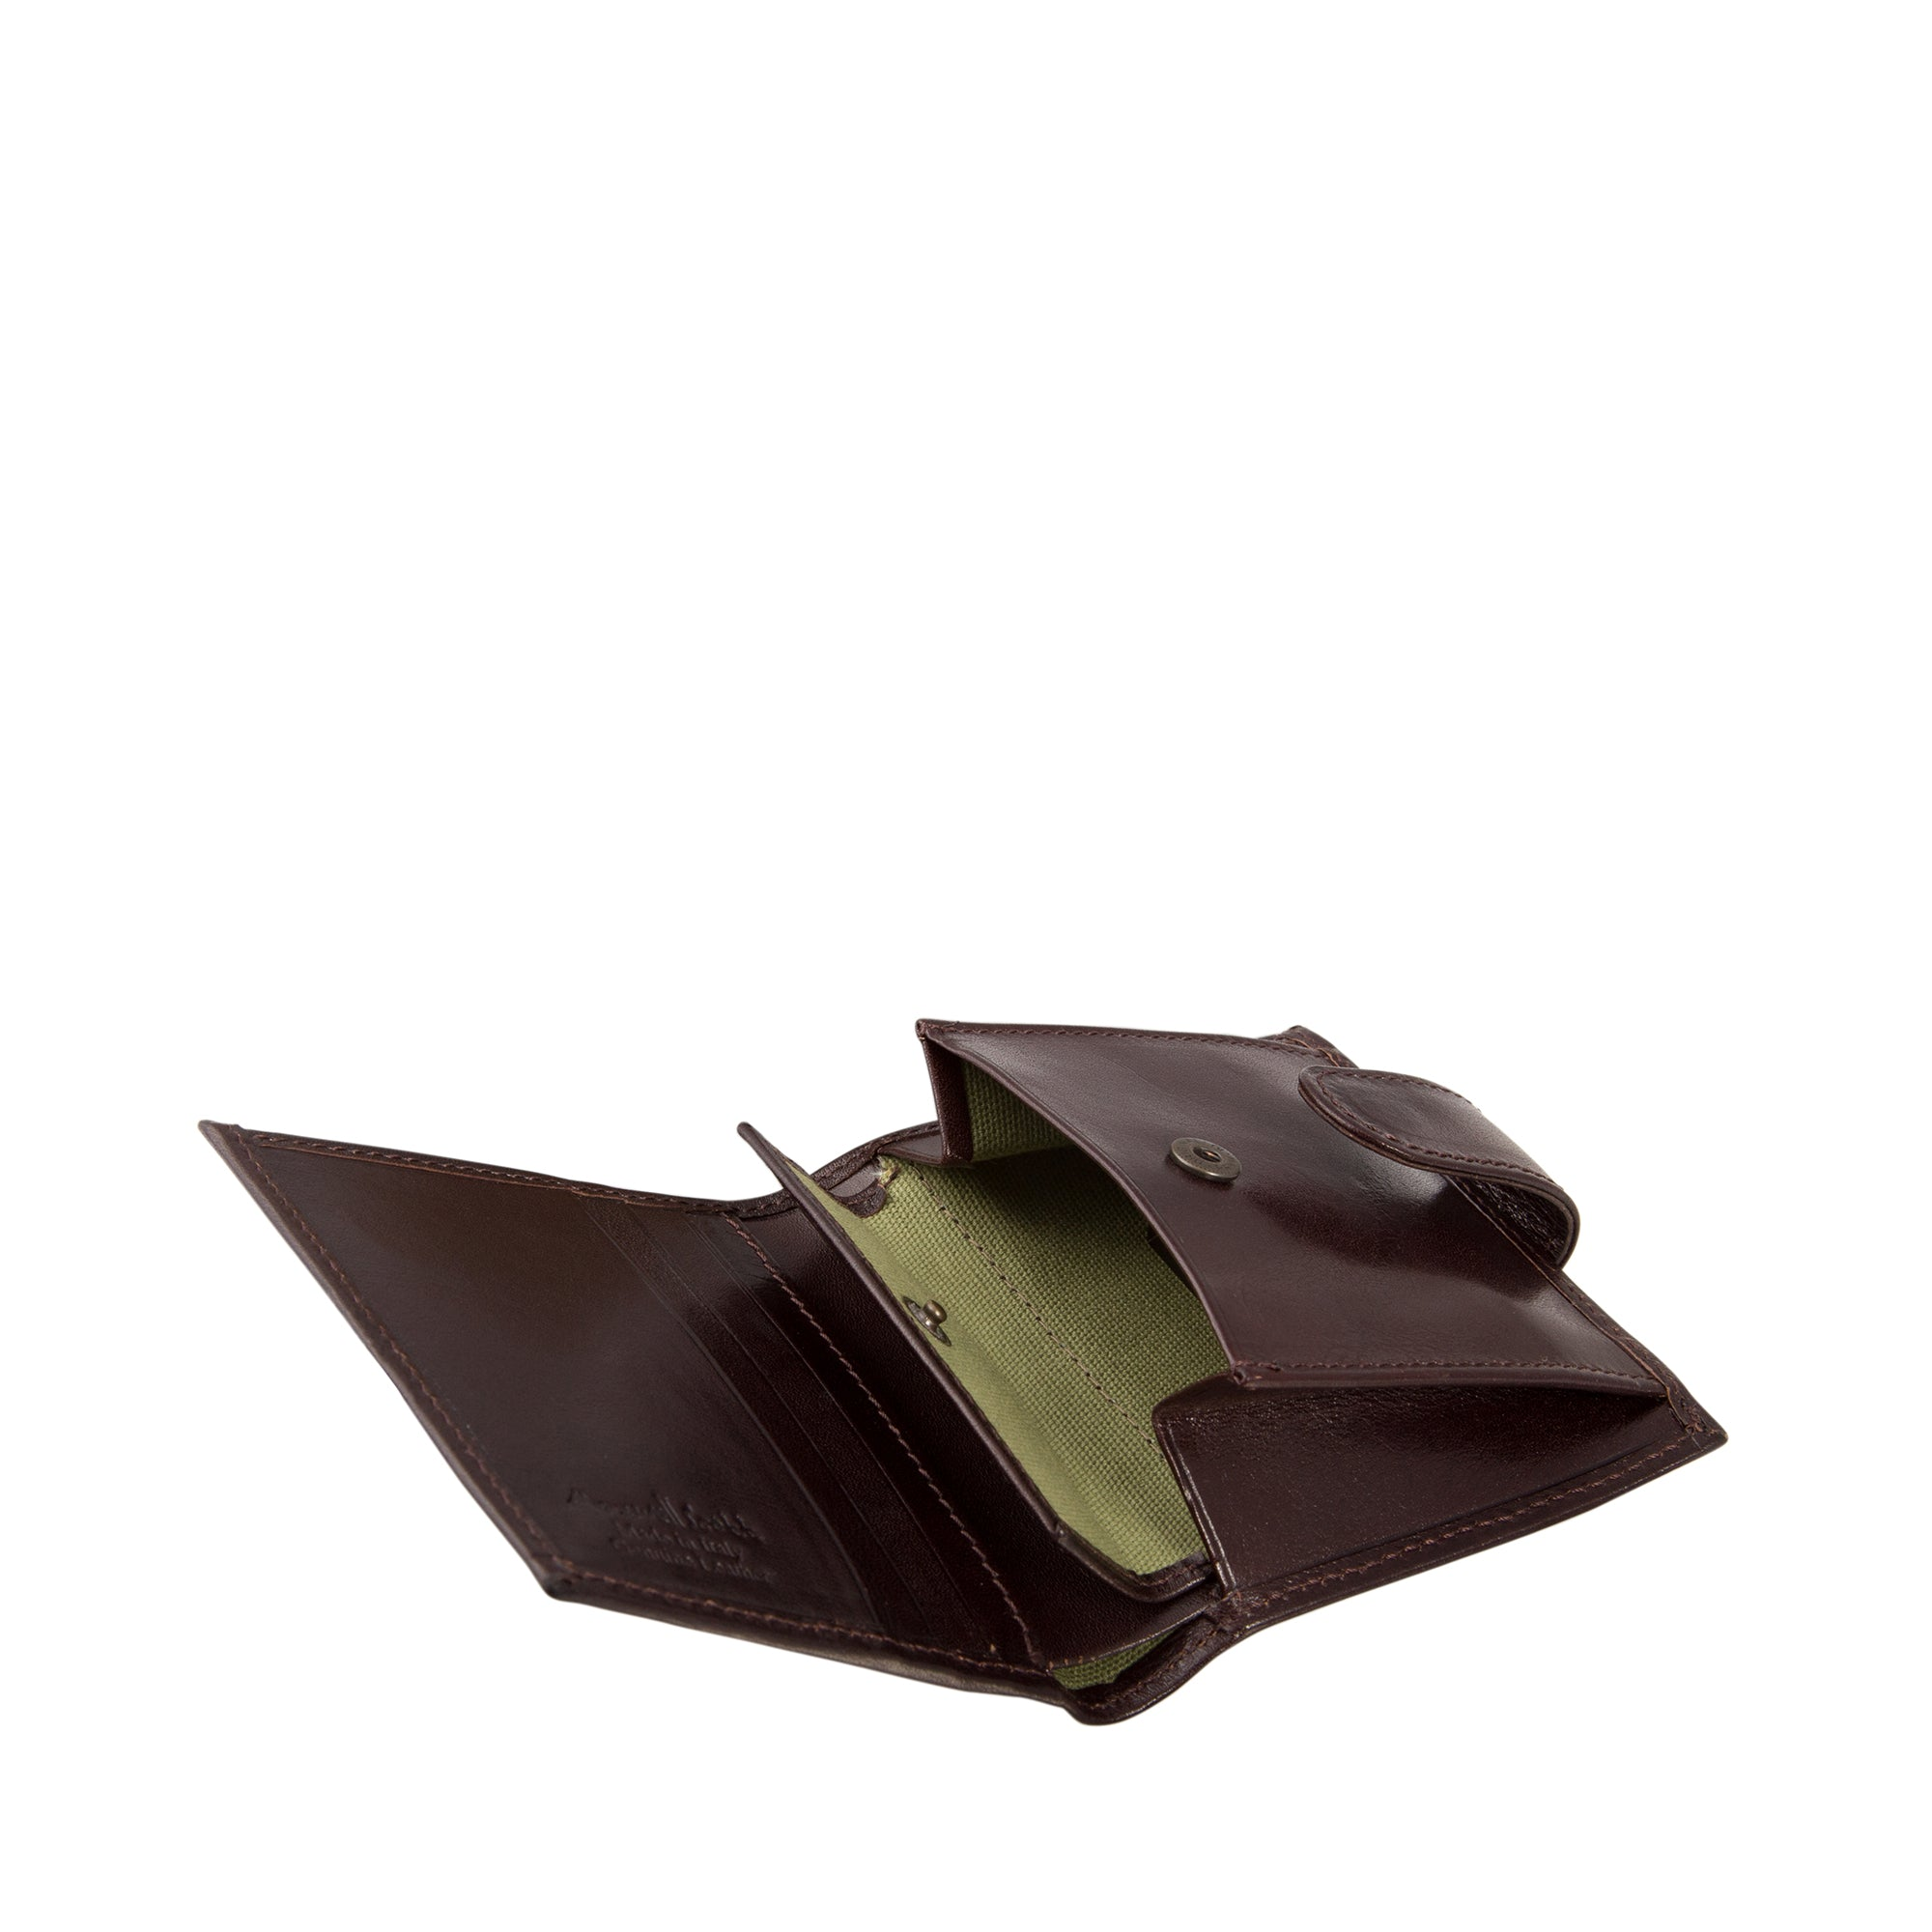 Image 5 of the 'Pietre' Brown Veg-Tanned Leather Compact Wallet